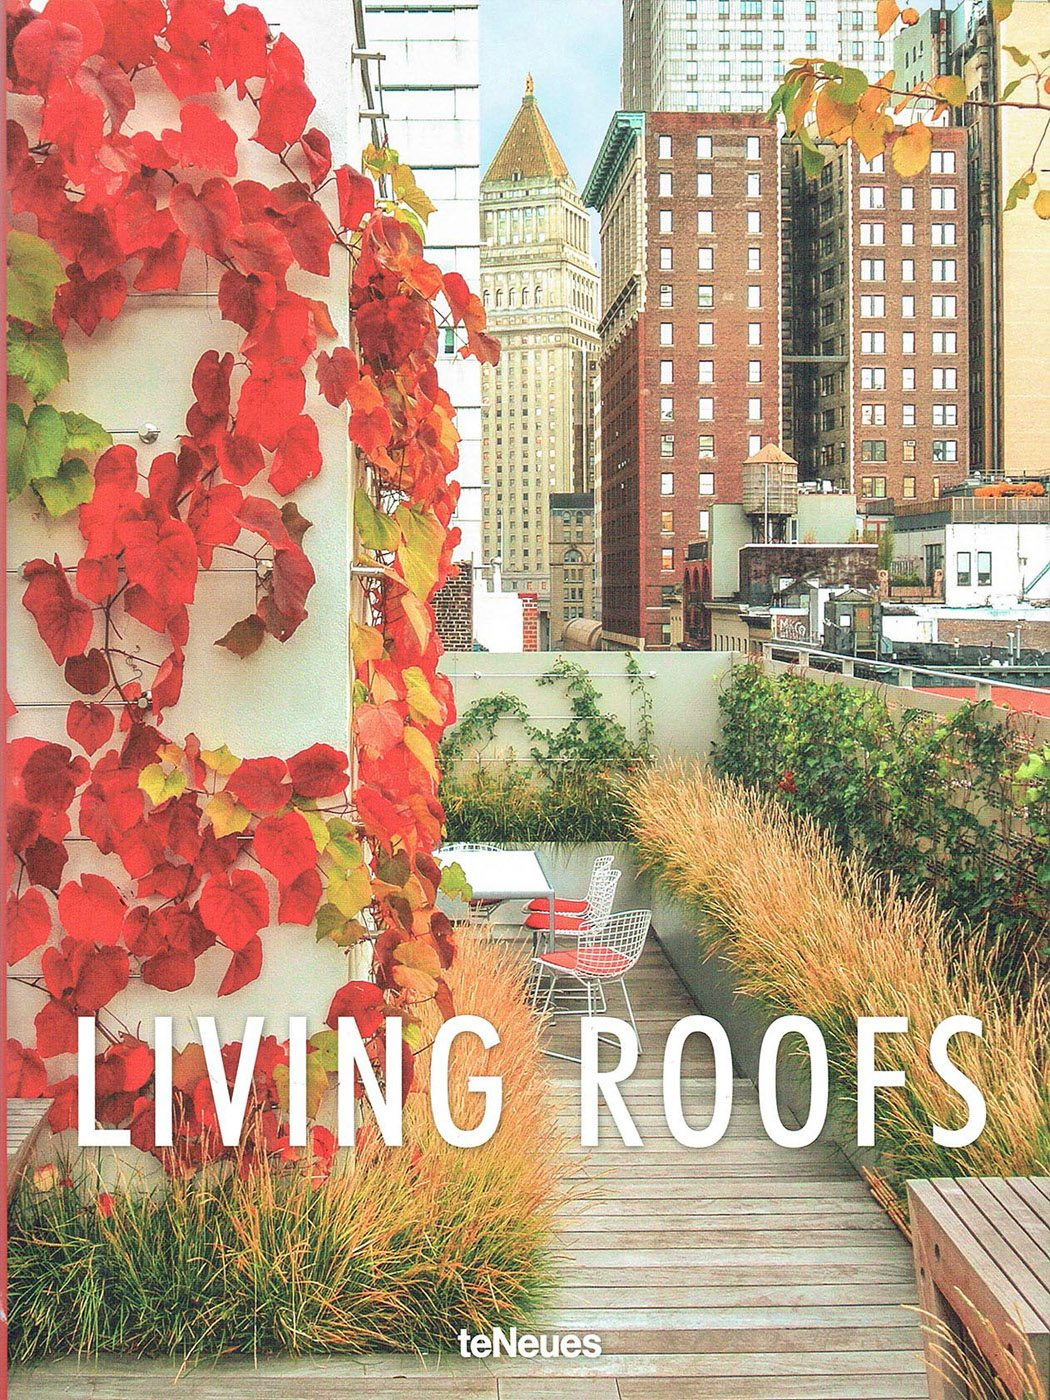 teneues-living-roofs-cover-use